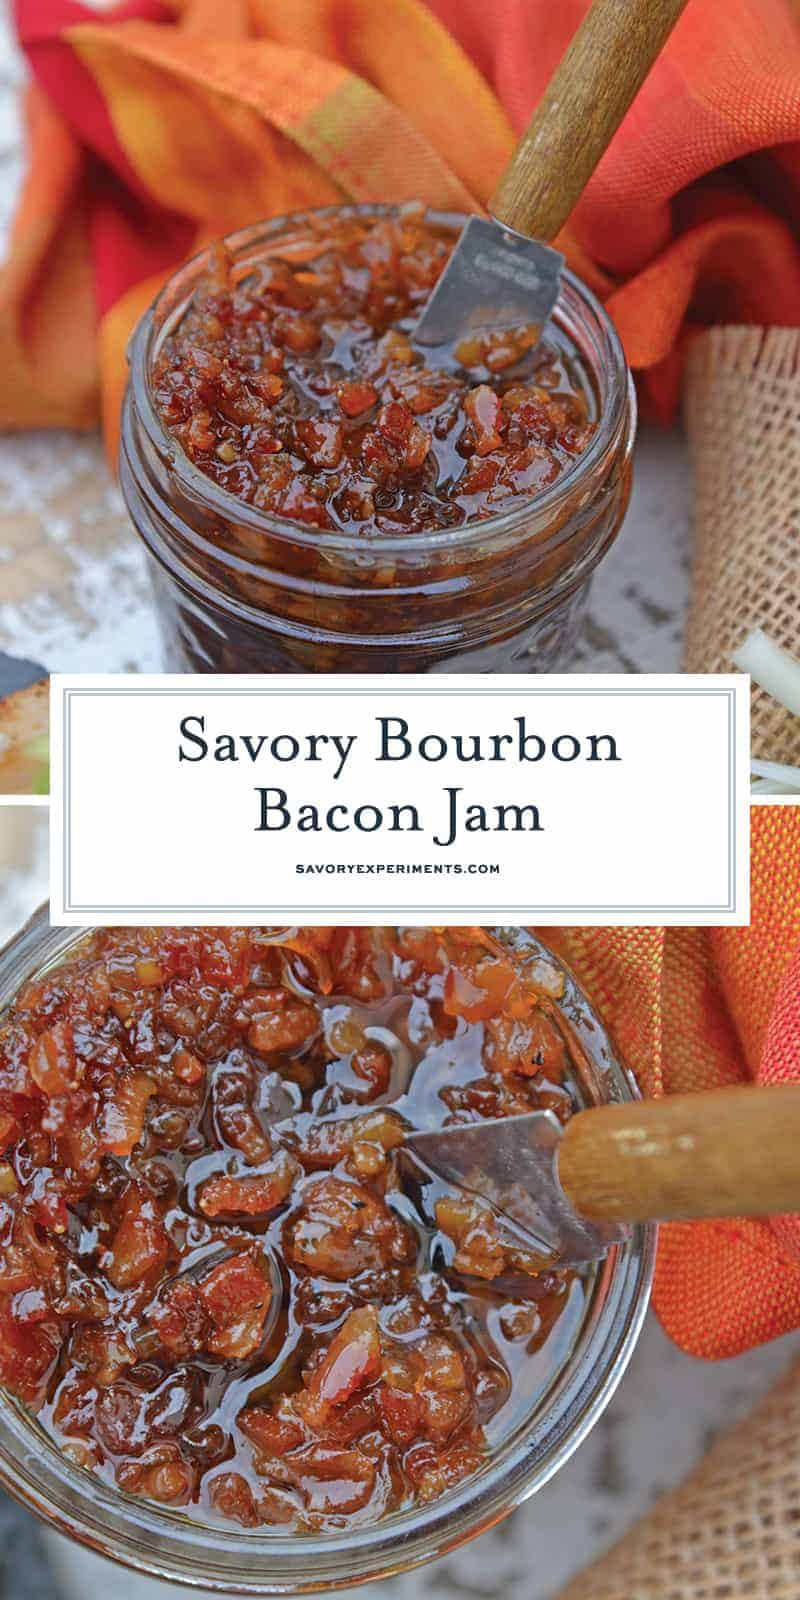 My Bourbon Bacon Jam Recipe will change the way you see jam. This jam is sweet and savory and also happens to be the most versatile condiment around.  #bourbon #bacon #baconjam www.savoryexperiments.com